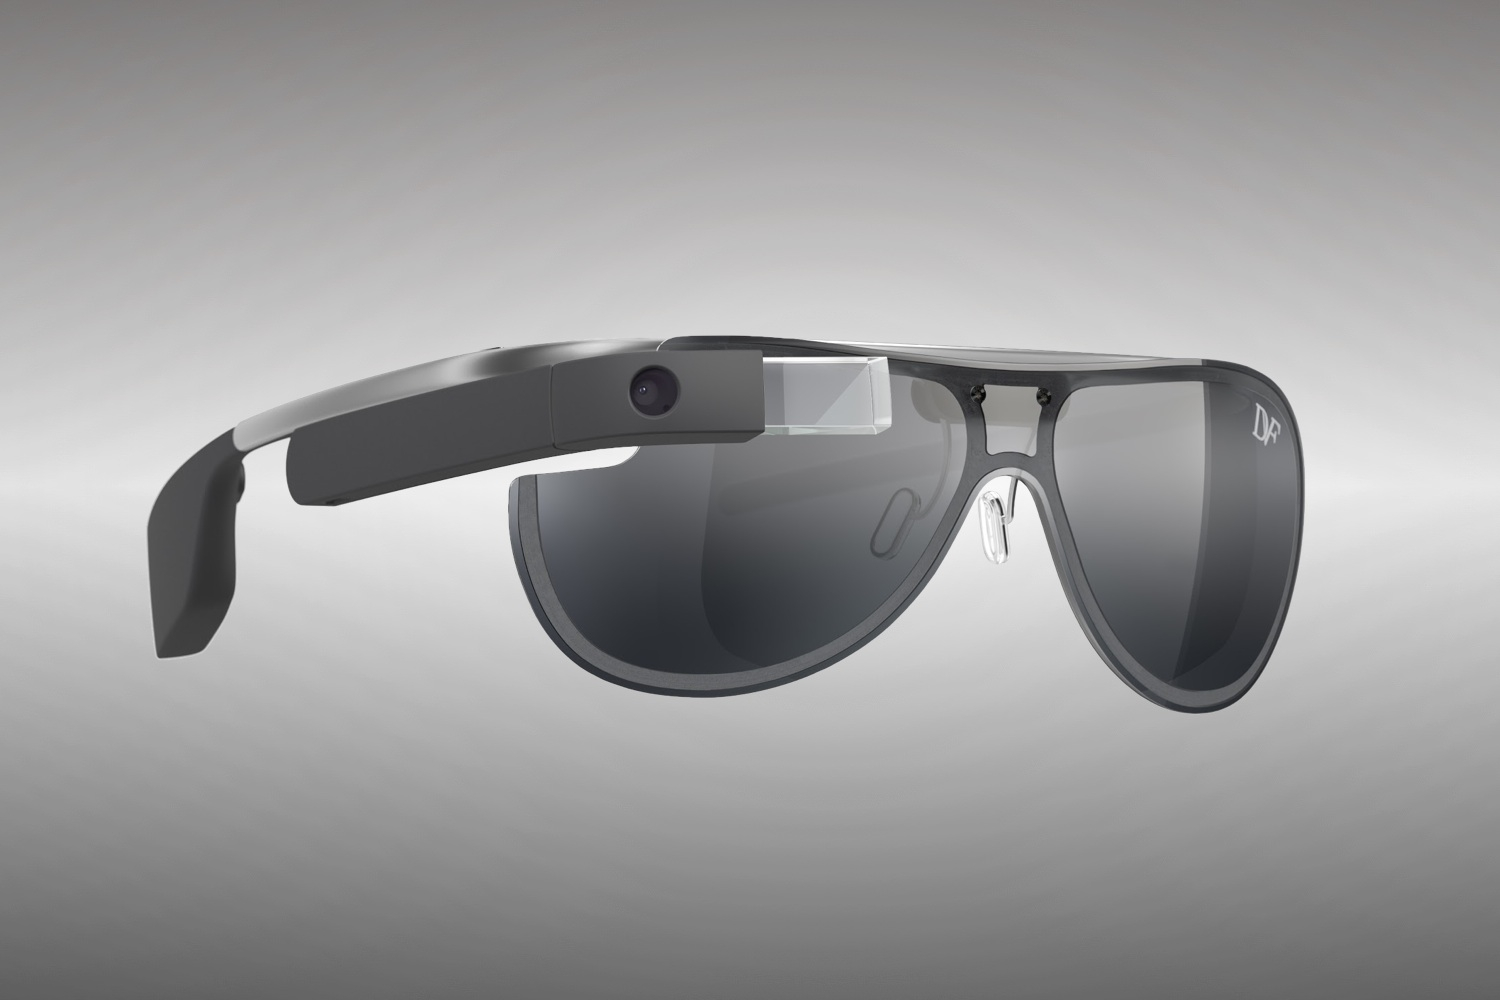 Google's Still Trying To Make Glass Happen